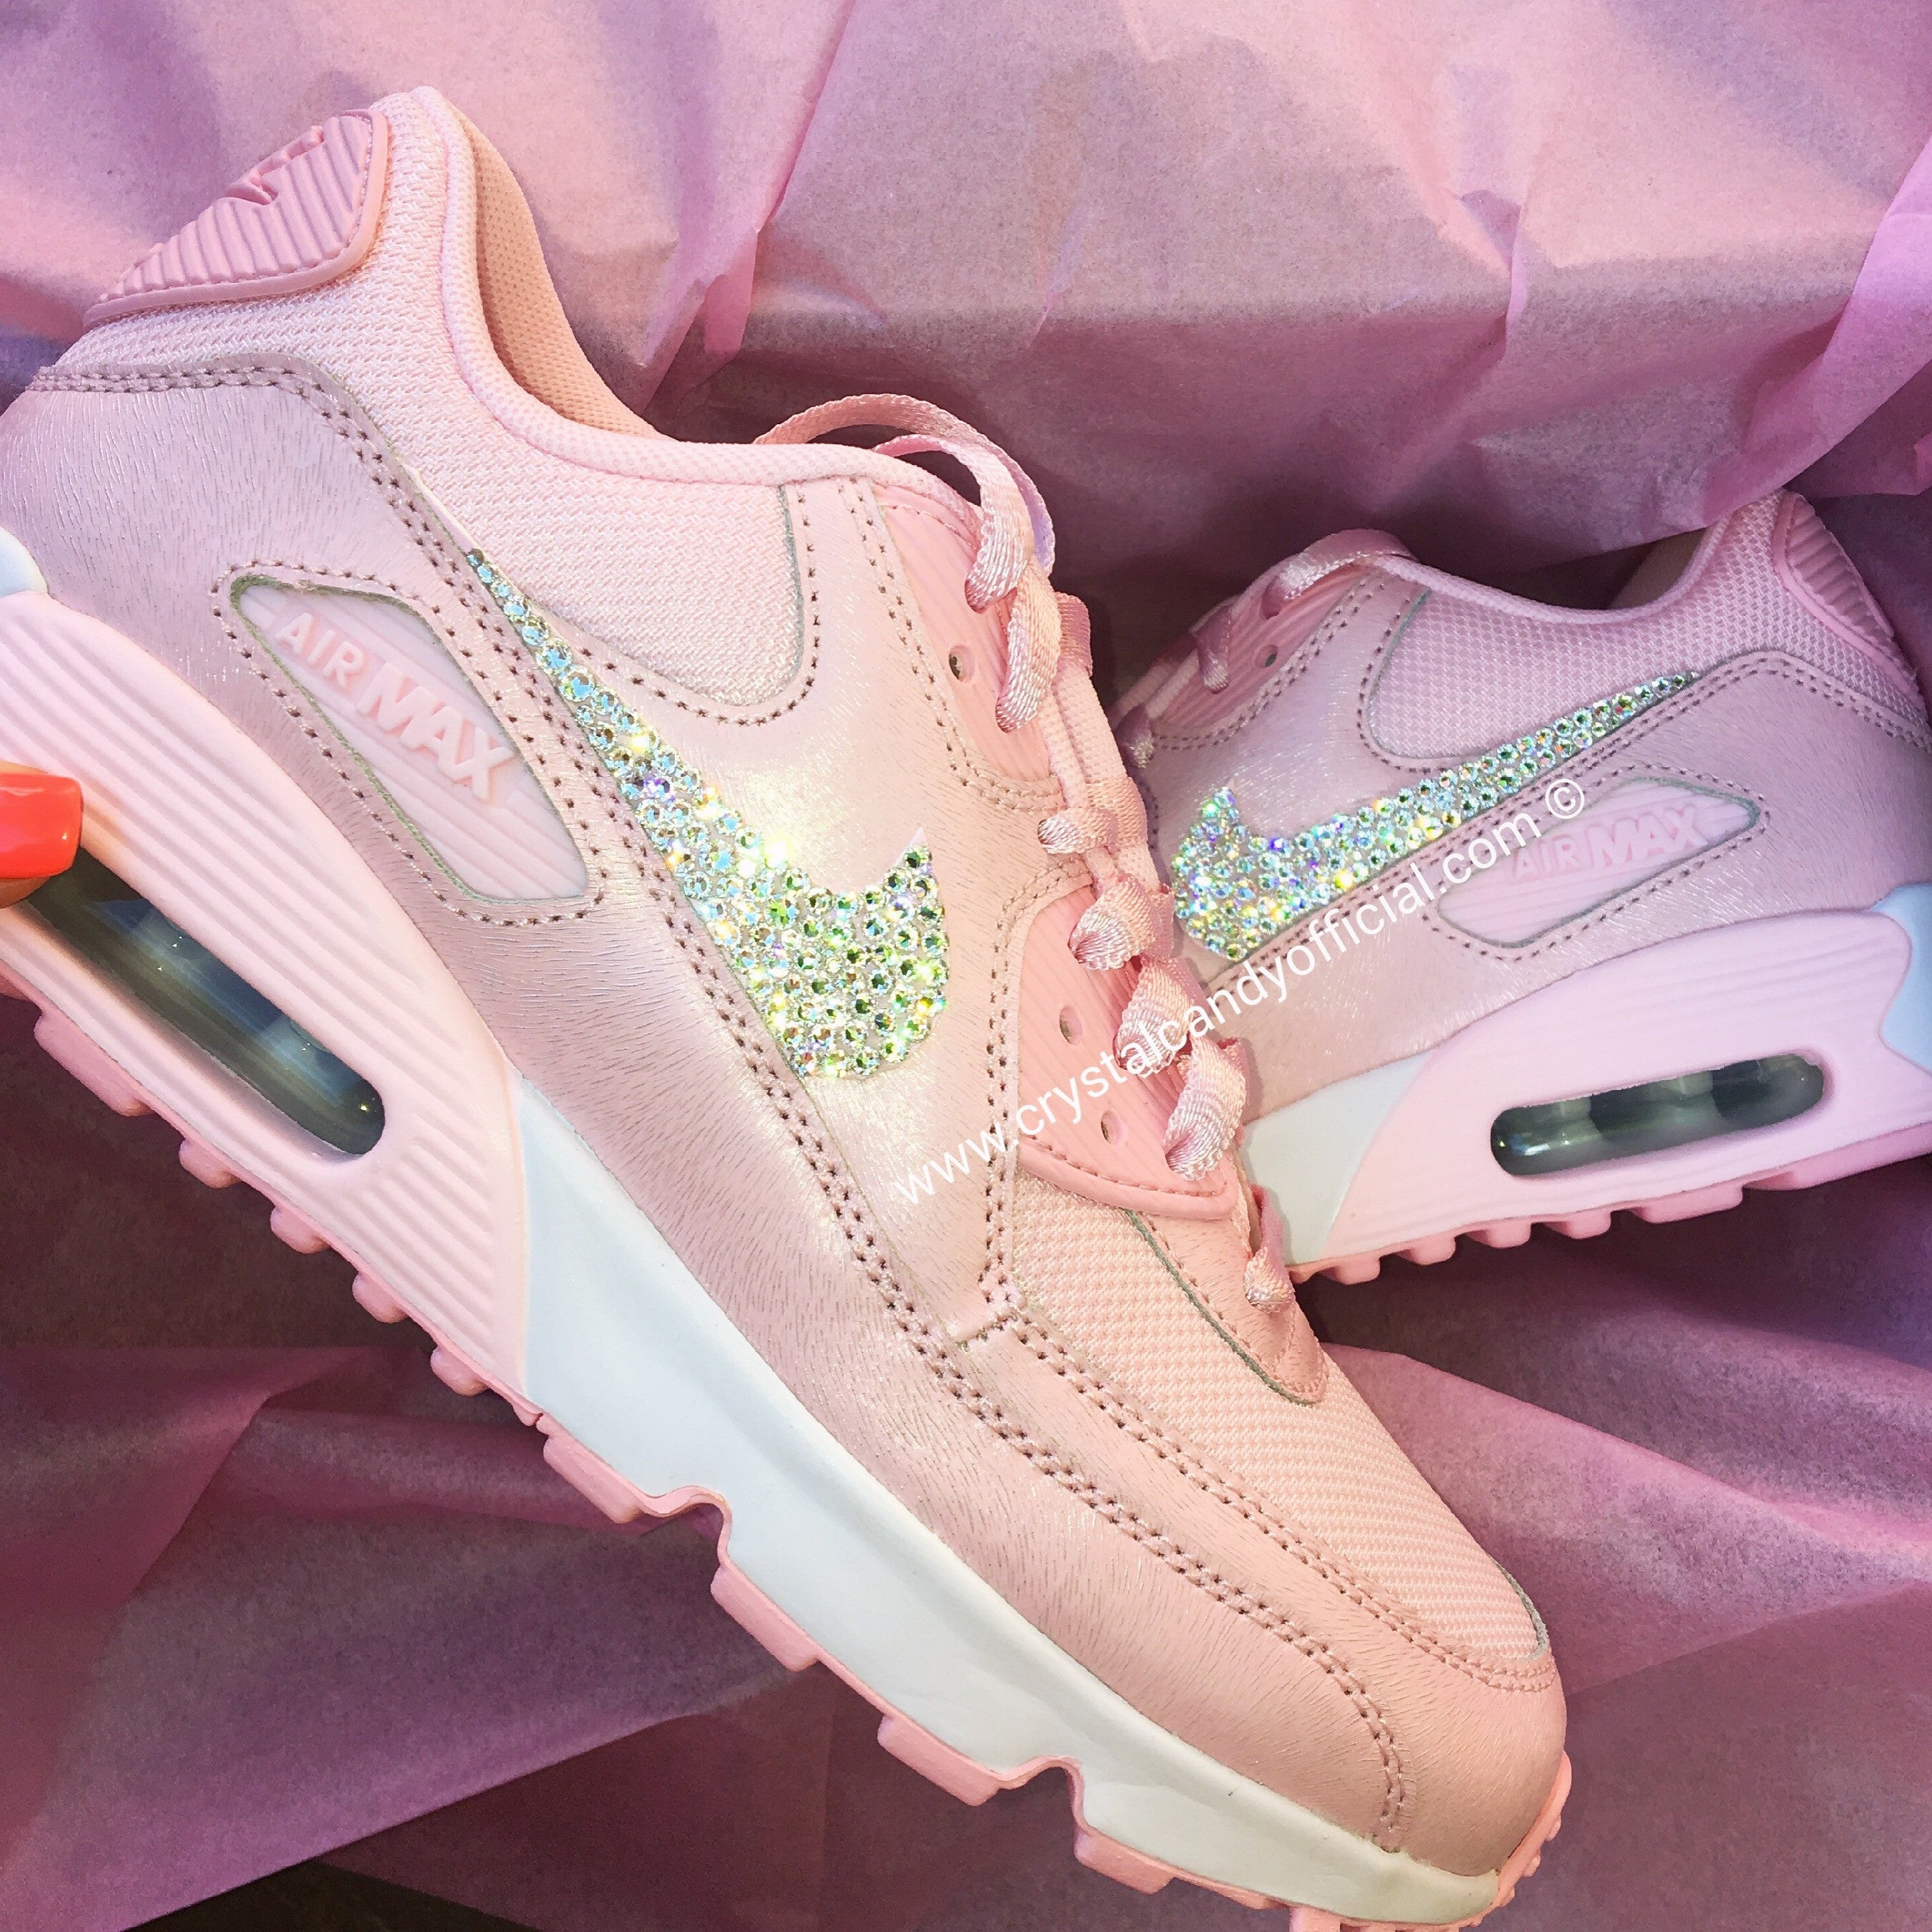 CRYSTAL NIKE AIR MAX 90 s IN BABY PINK Crystal Candy Limited